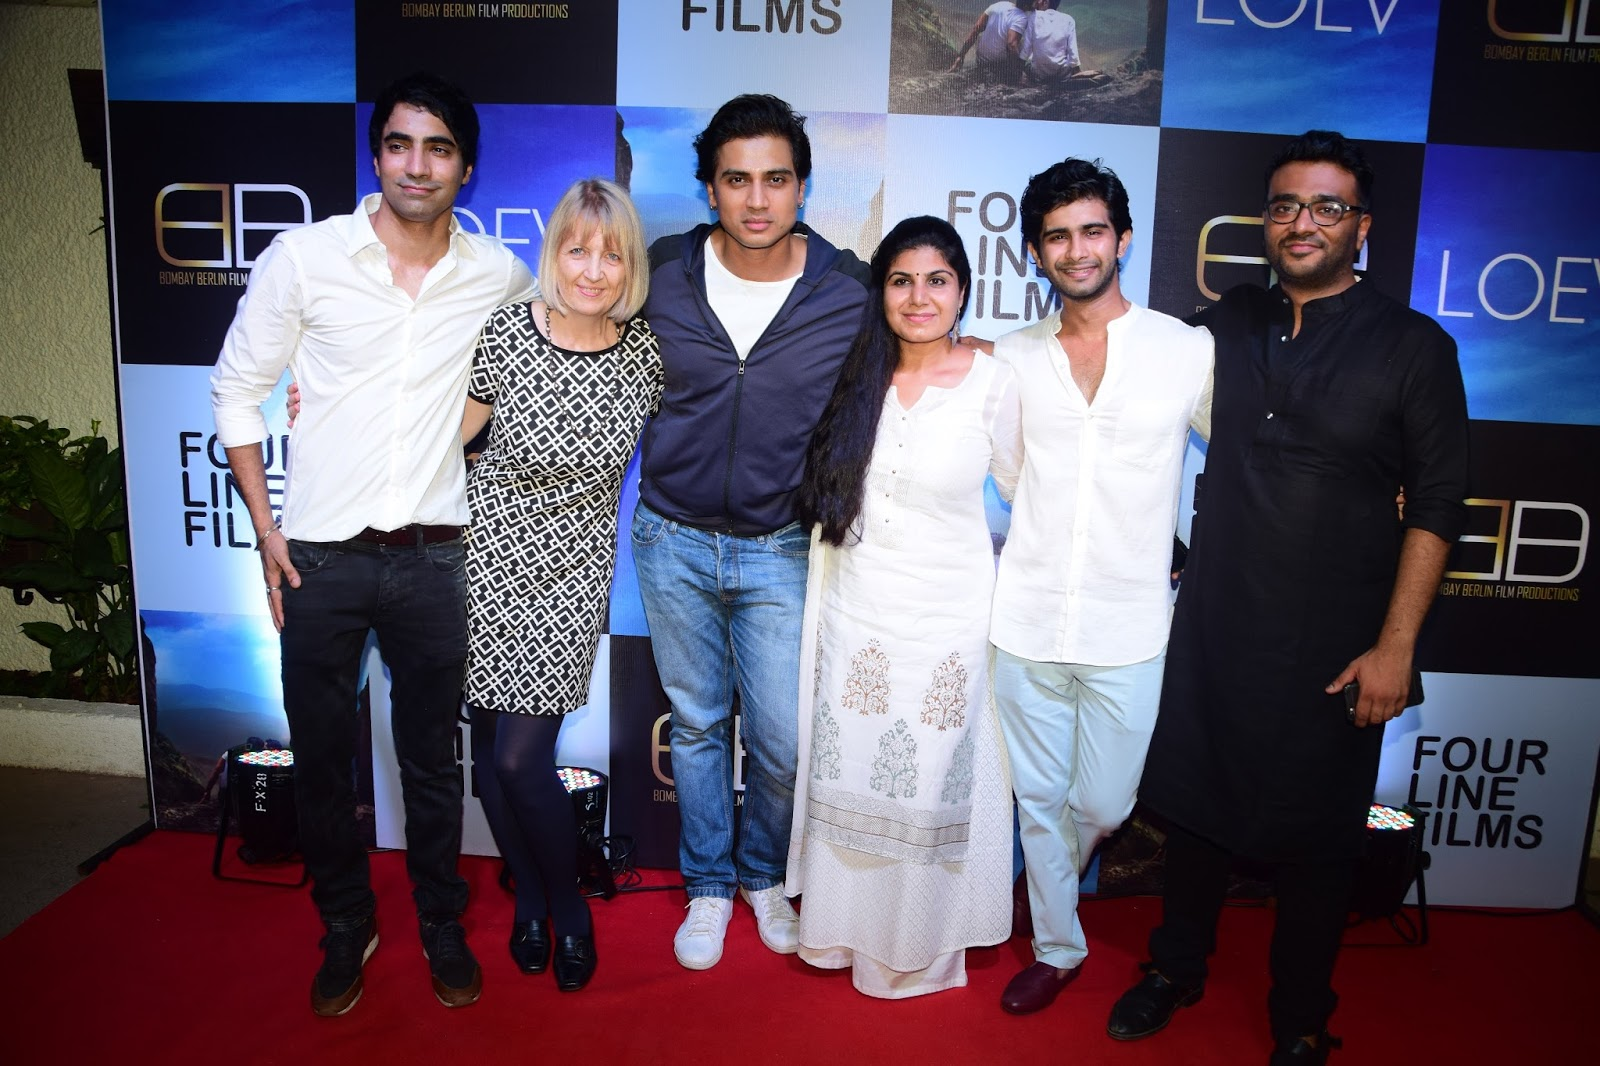 46c8430924d A Star Studded Screening of Sudahanshu Saria s LOEV The exclusive red  carpet screening of Sudhanshu Saria s  LOEV  was a star studded affair